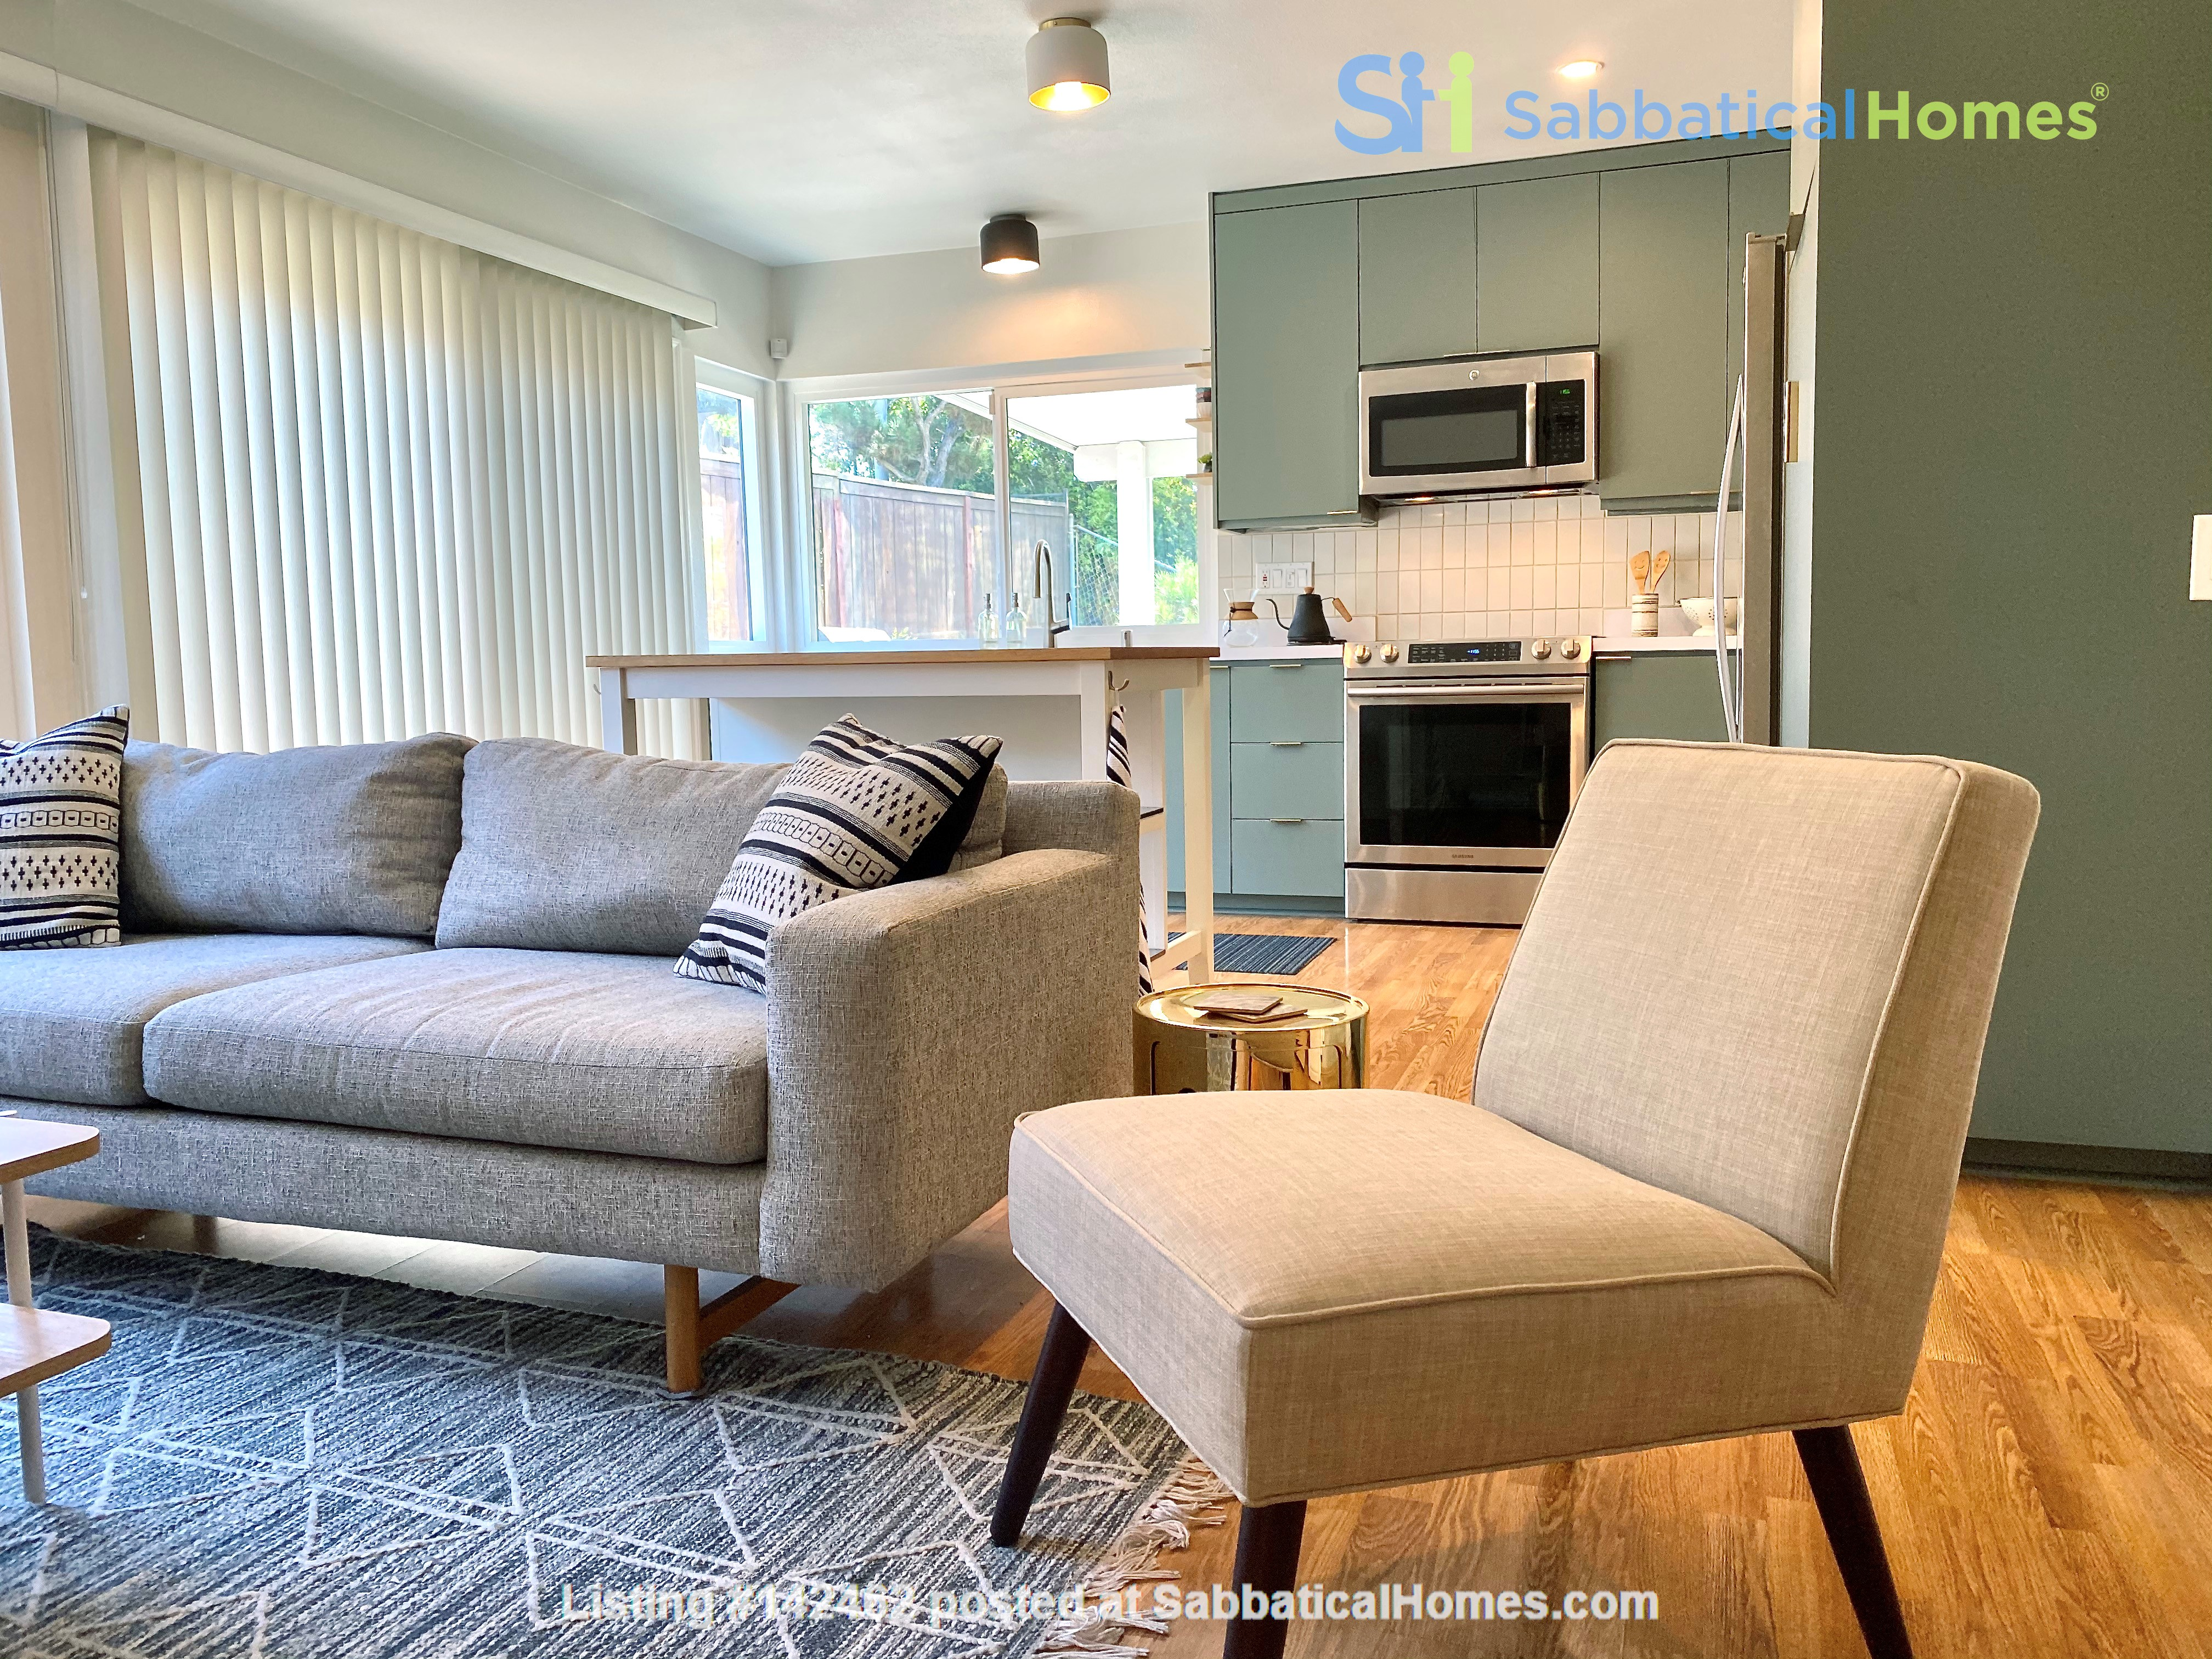 Ironwood Scripps (furnished) Home Rental in San Diego, California, United States 2